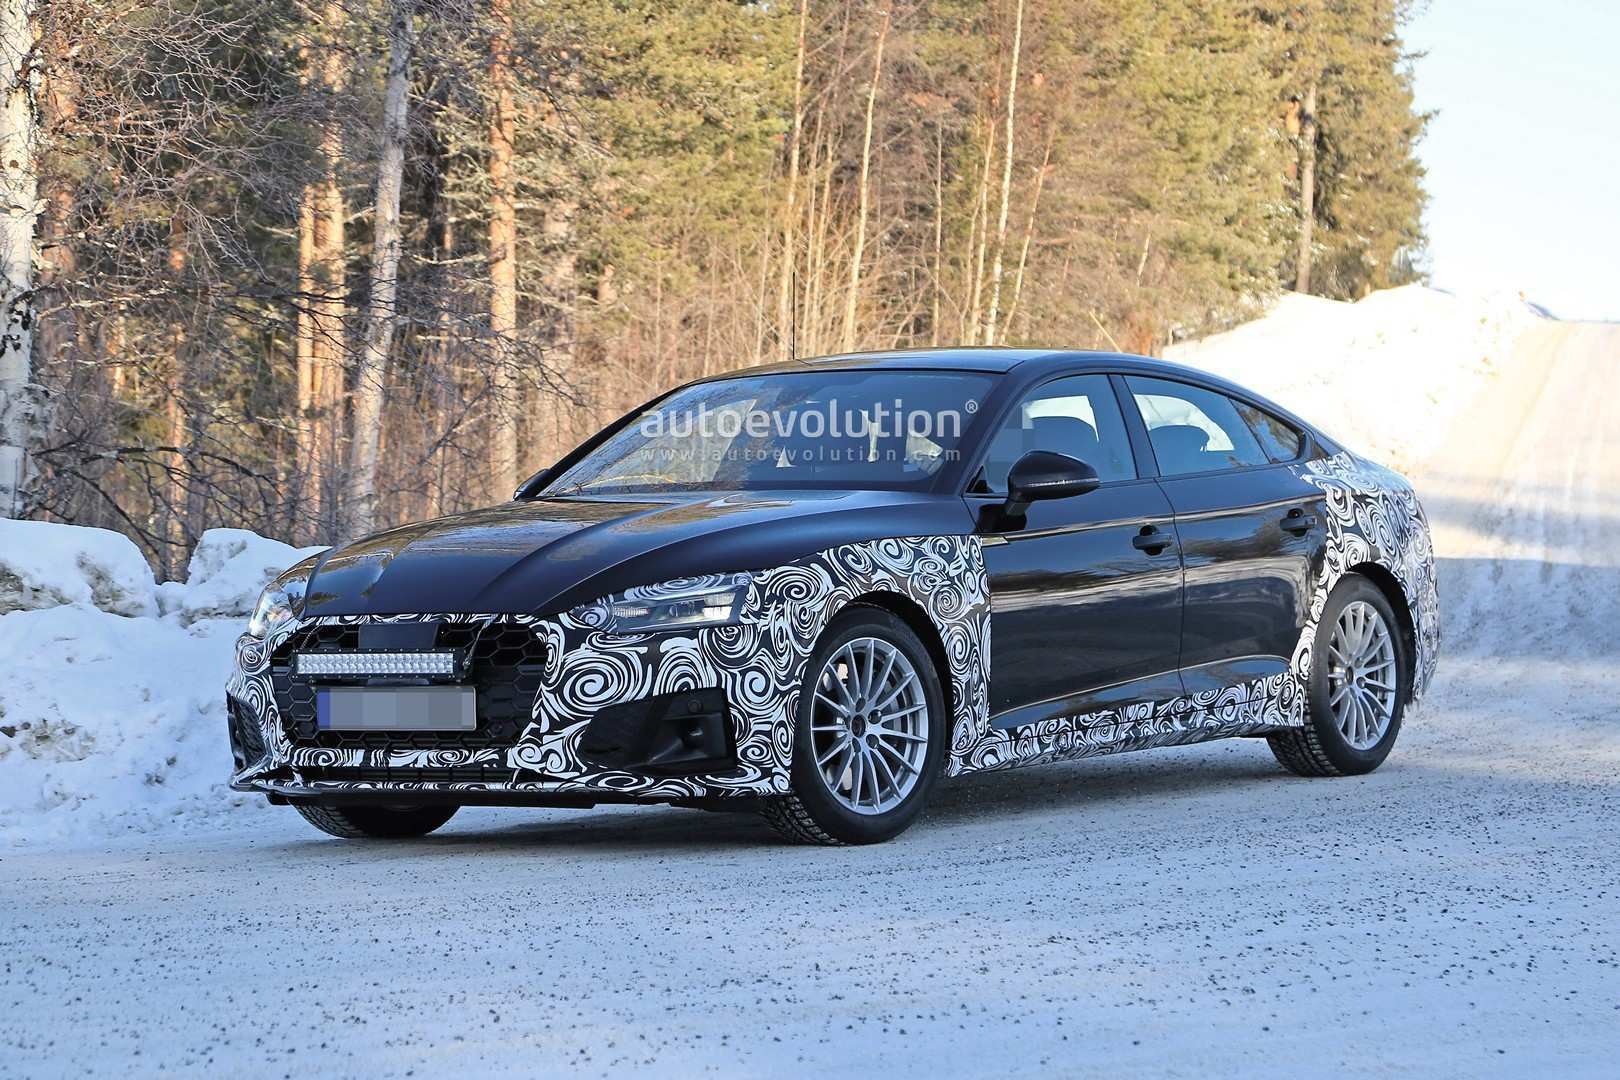 82 All New Audi Hybrid 2020 Specs And Review